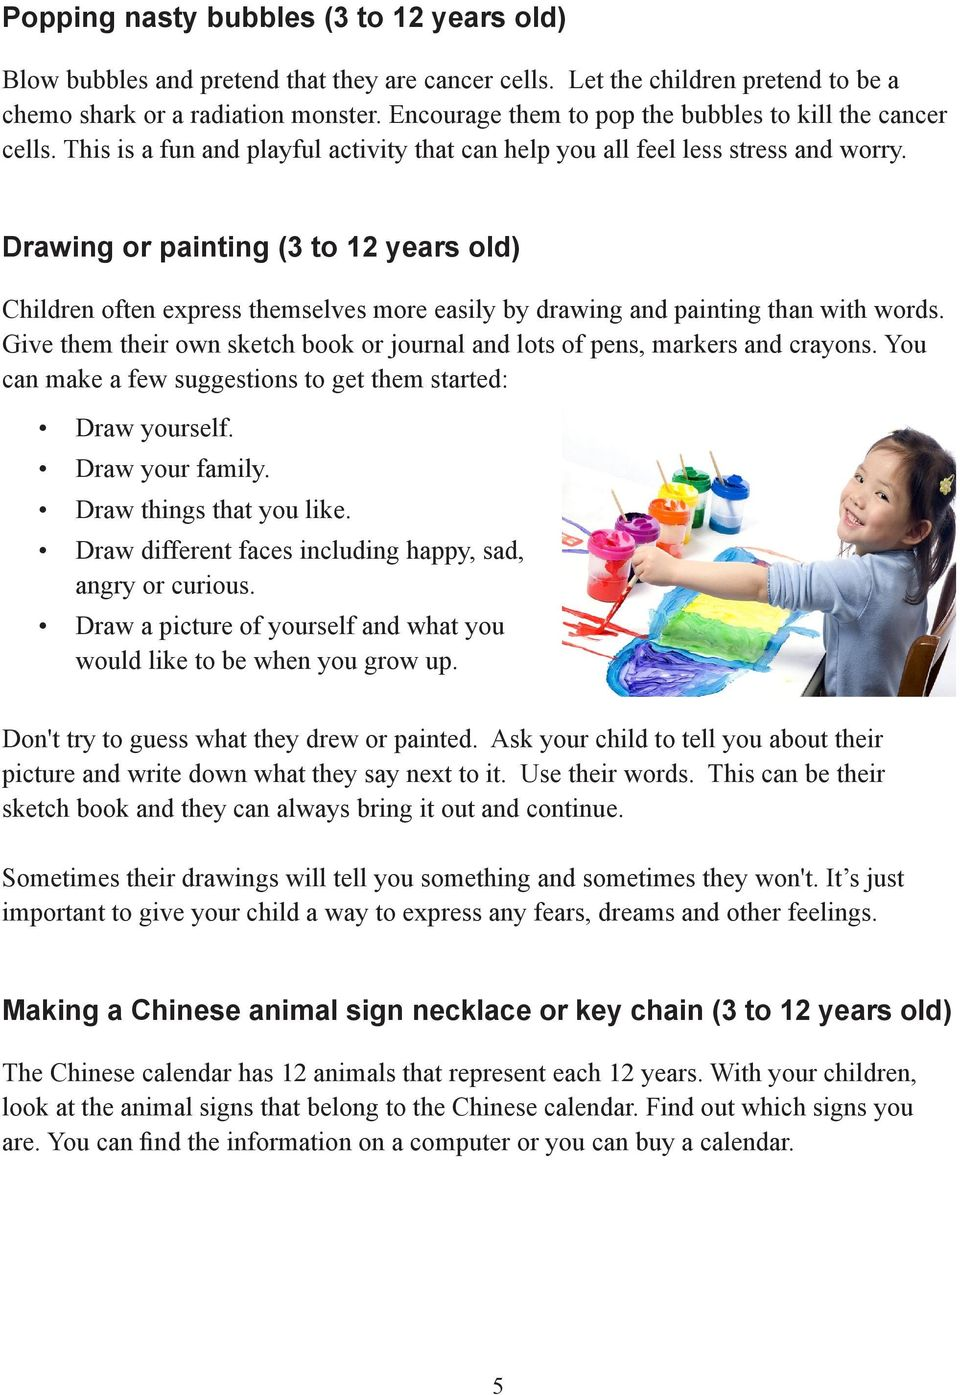 Drawing or painting (3 to 12 years old) Children often express themselves more easily by drawing and painting than with words.